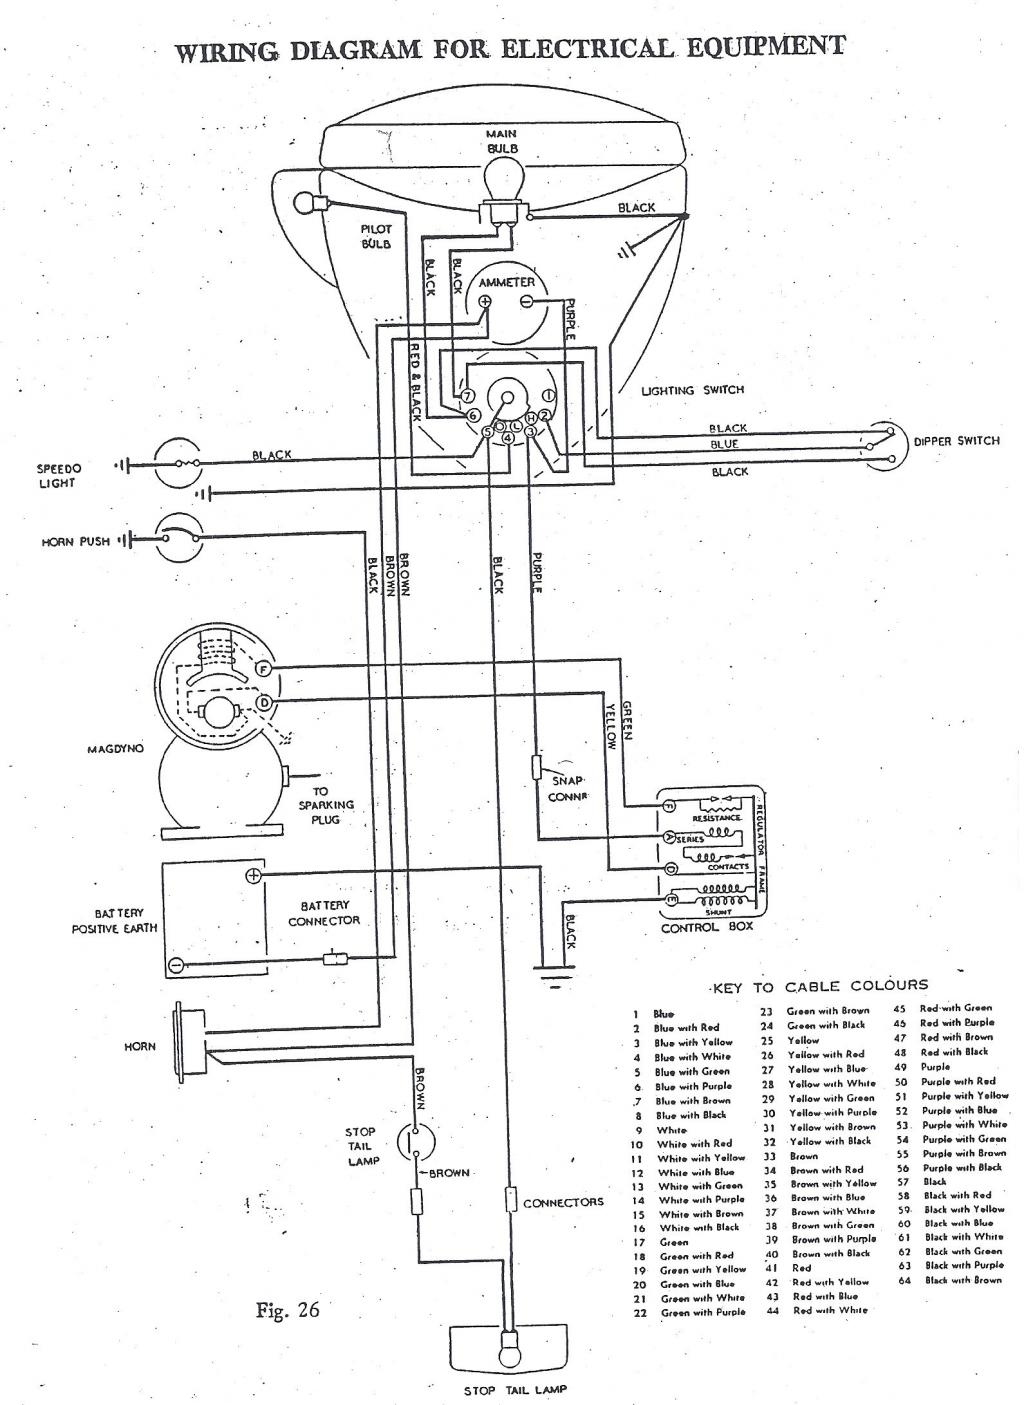 Ignition Coil Wiring Diagram Positive Earth